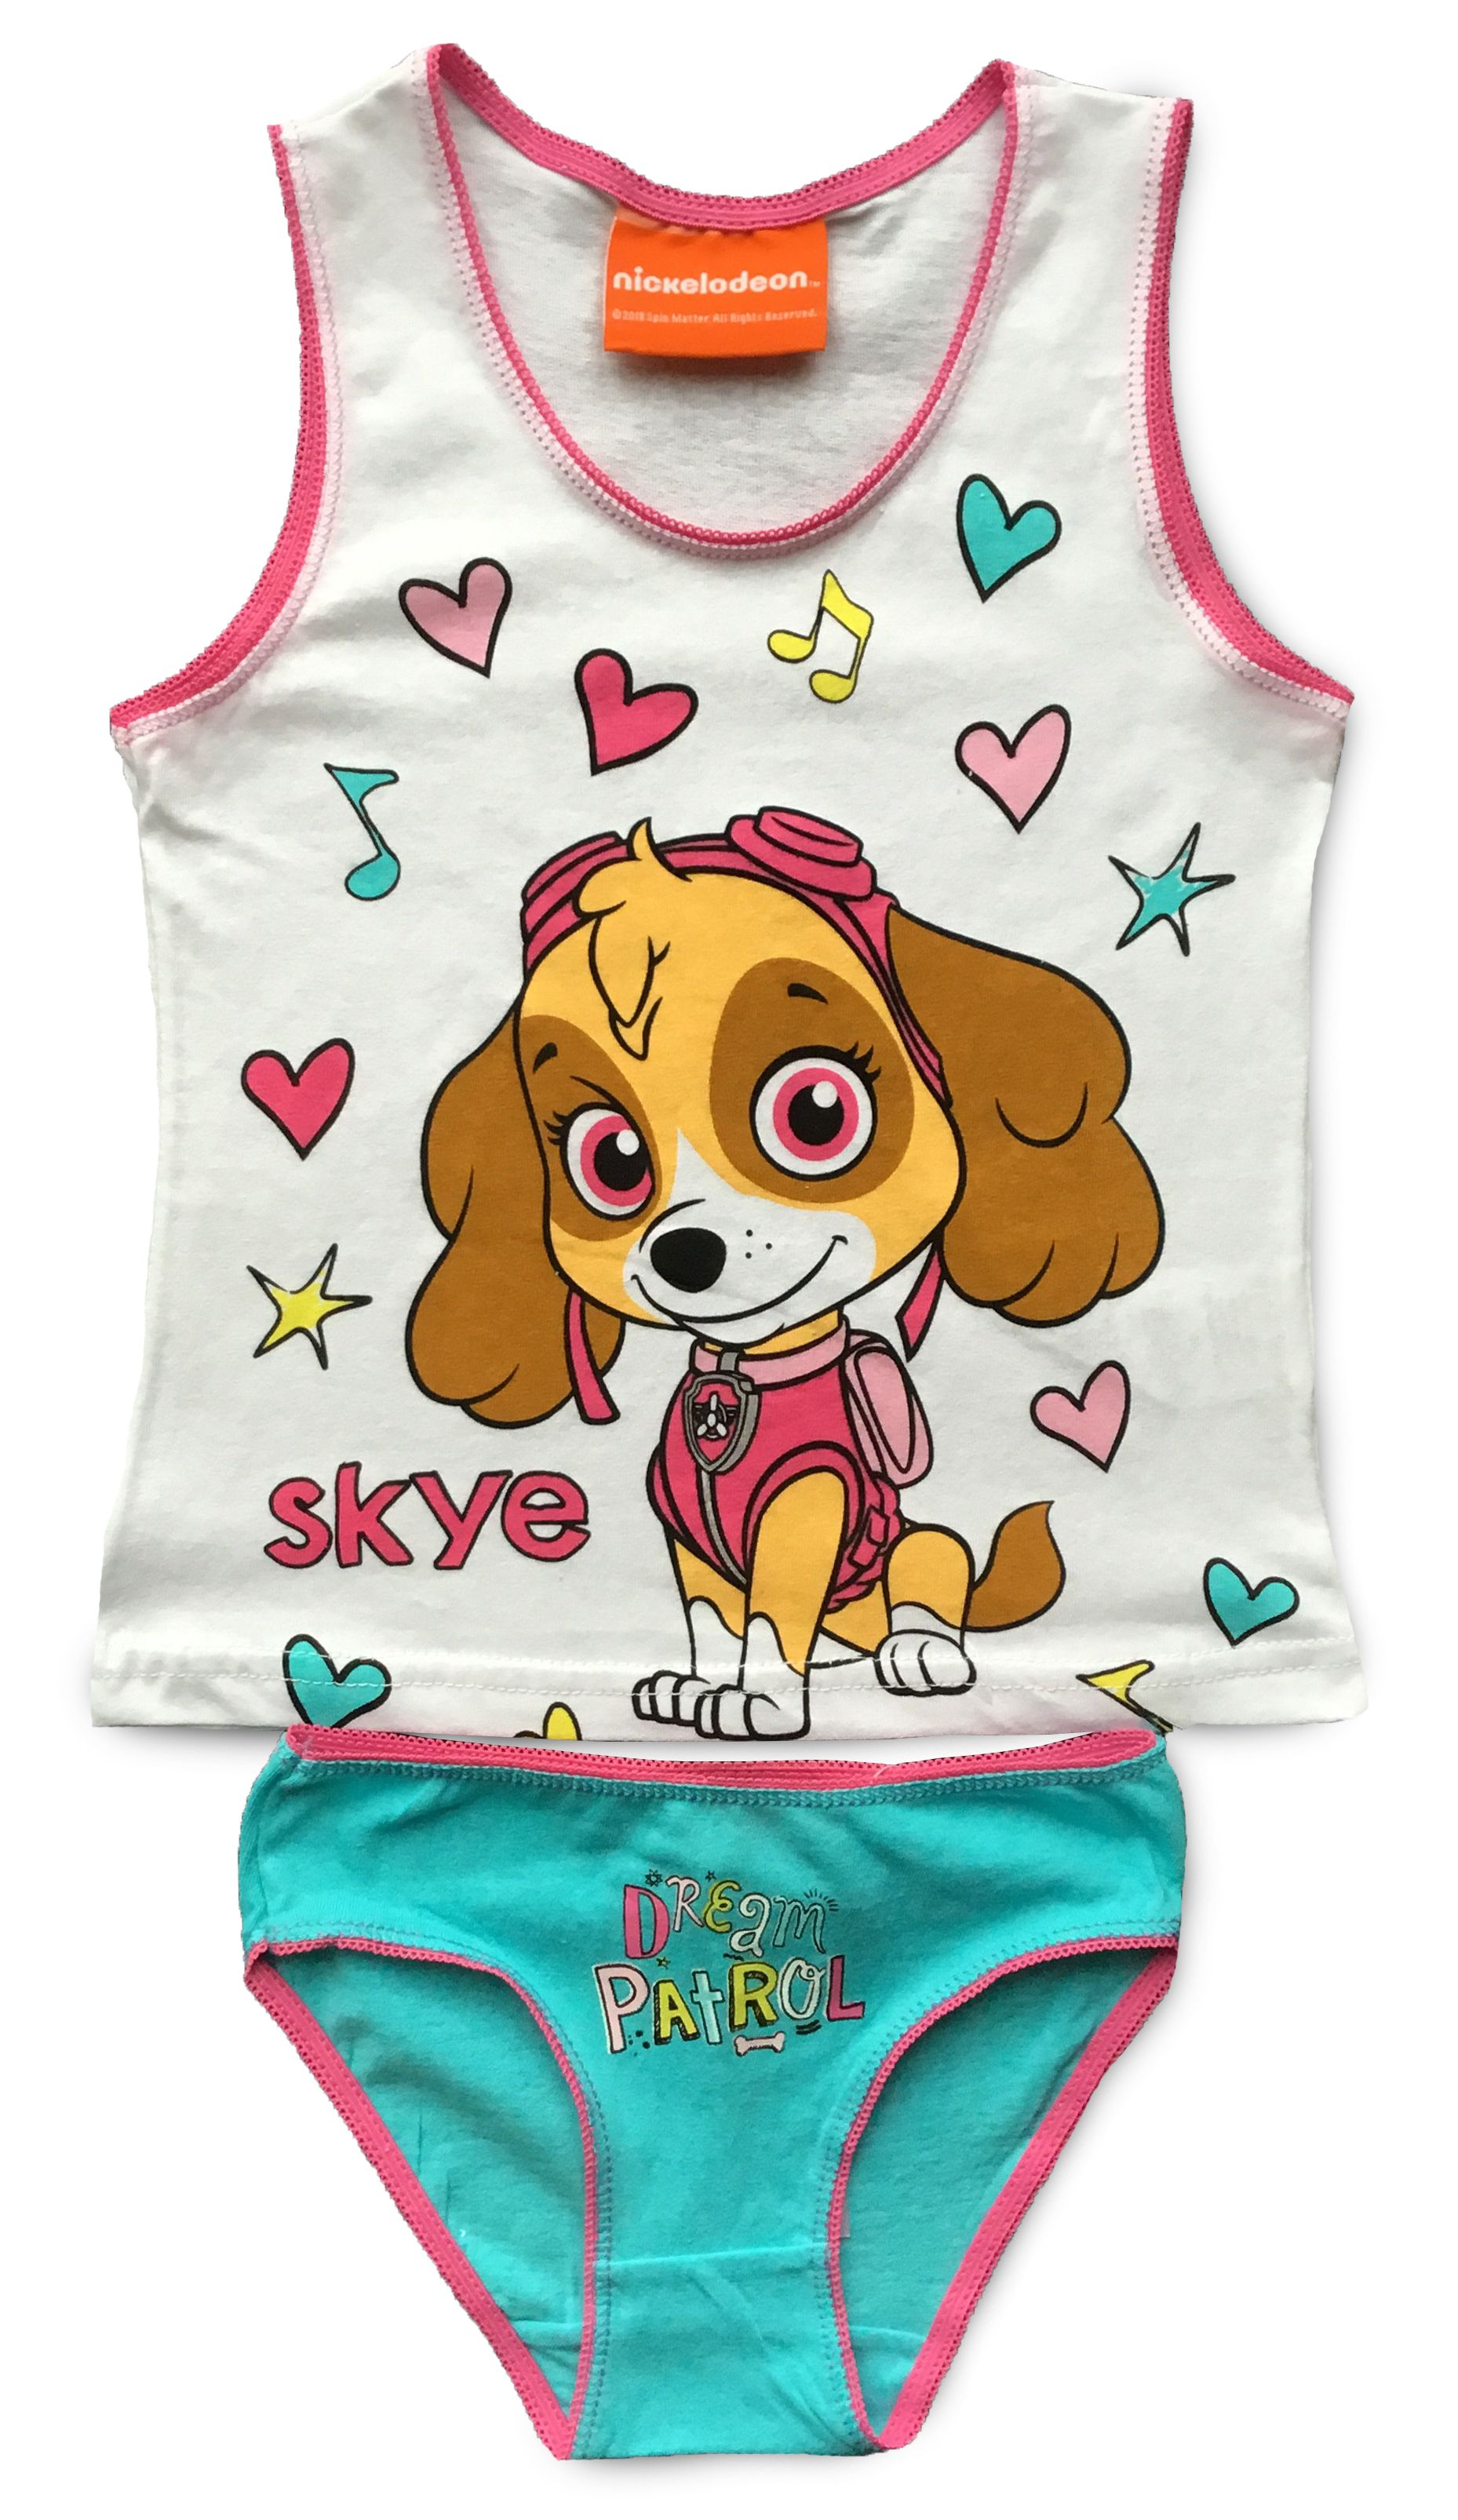 White//Pink Top Vest /& Briefs Set for Girls Skye PAW Patrol